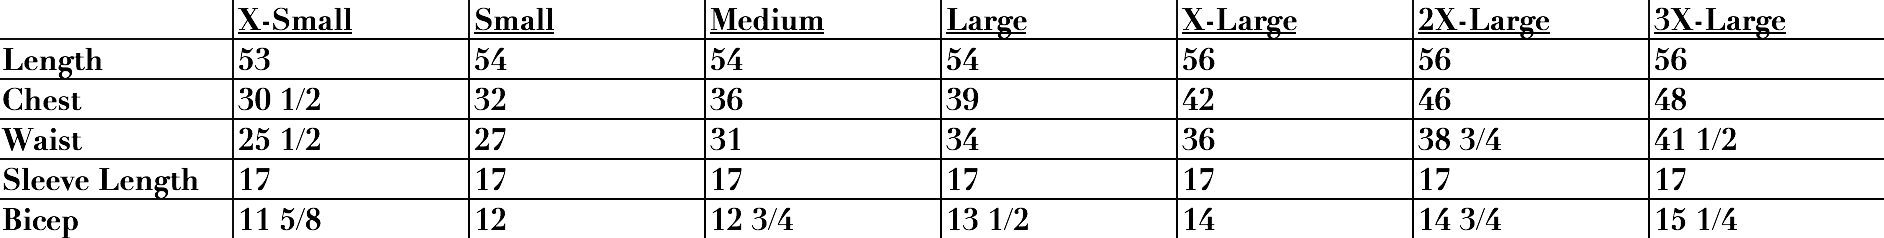 div-size-chart.png